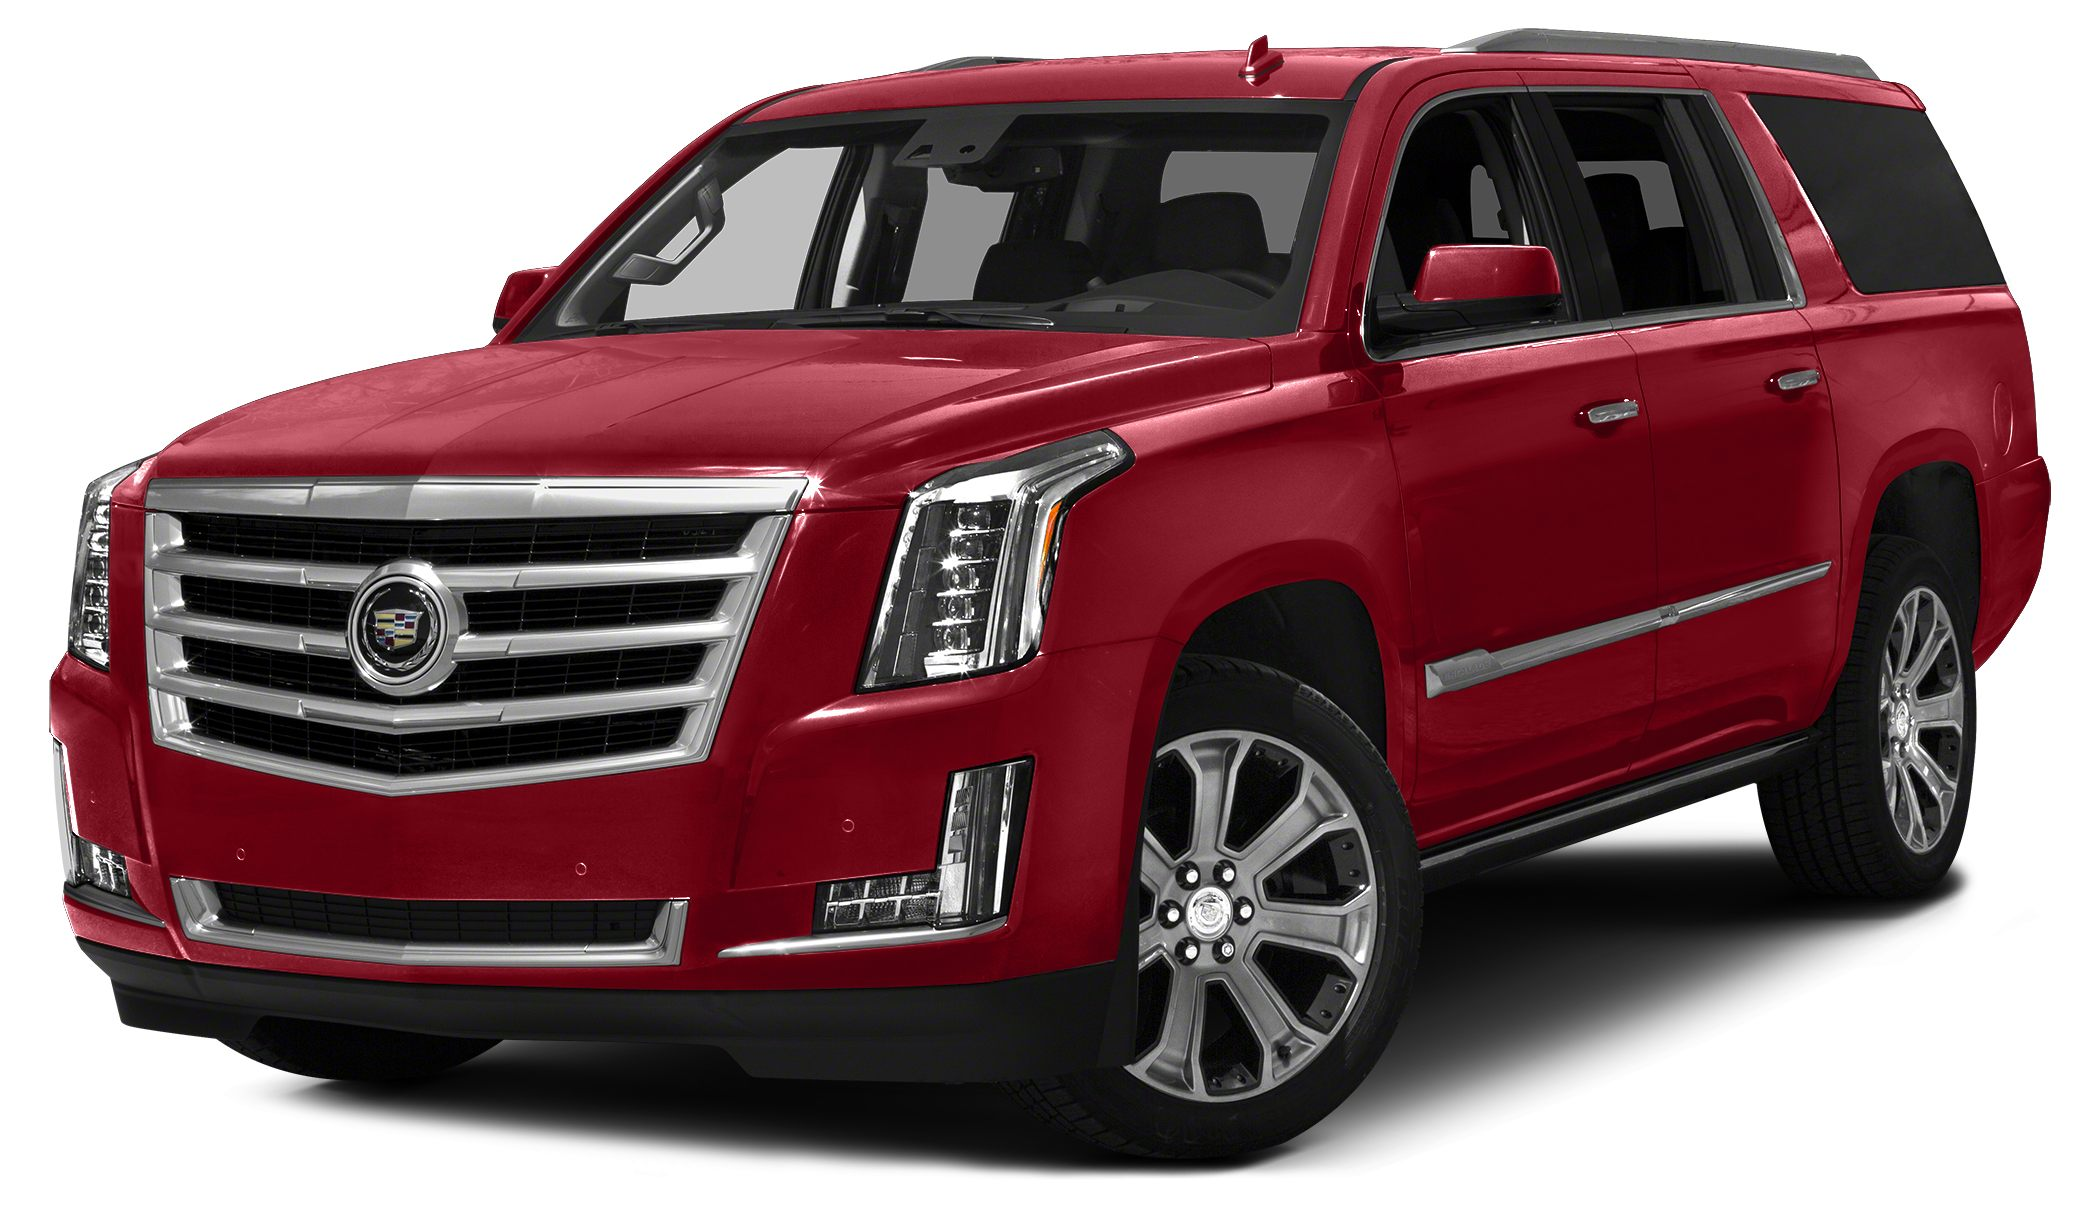 2015 Cadillac Escalade ESV Premium The well-recognized Escalade has been among the Kings of the SU